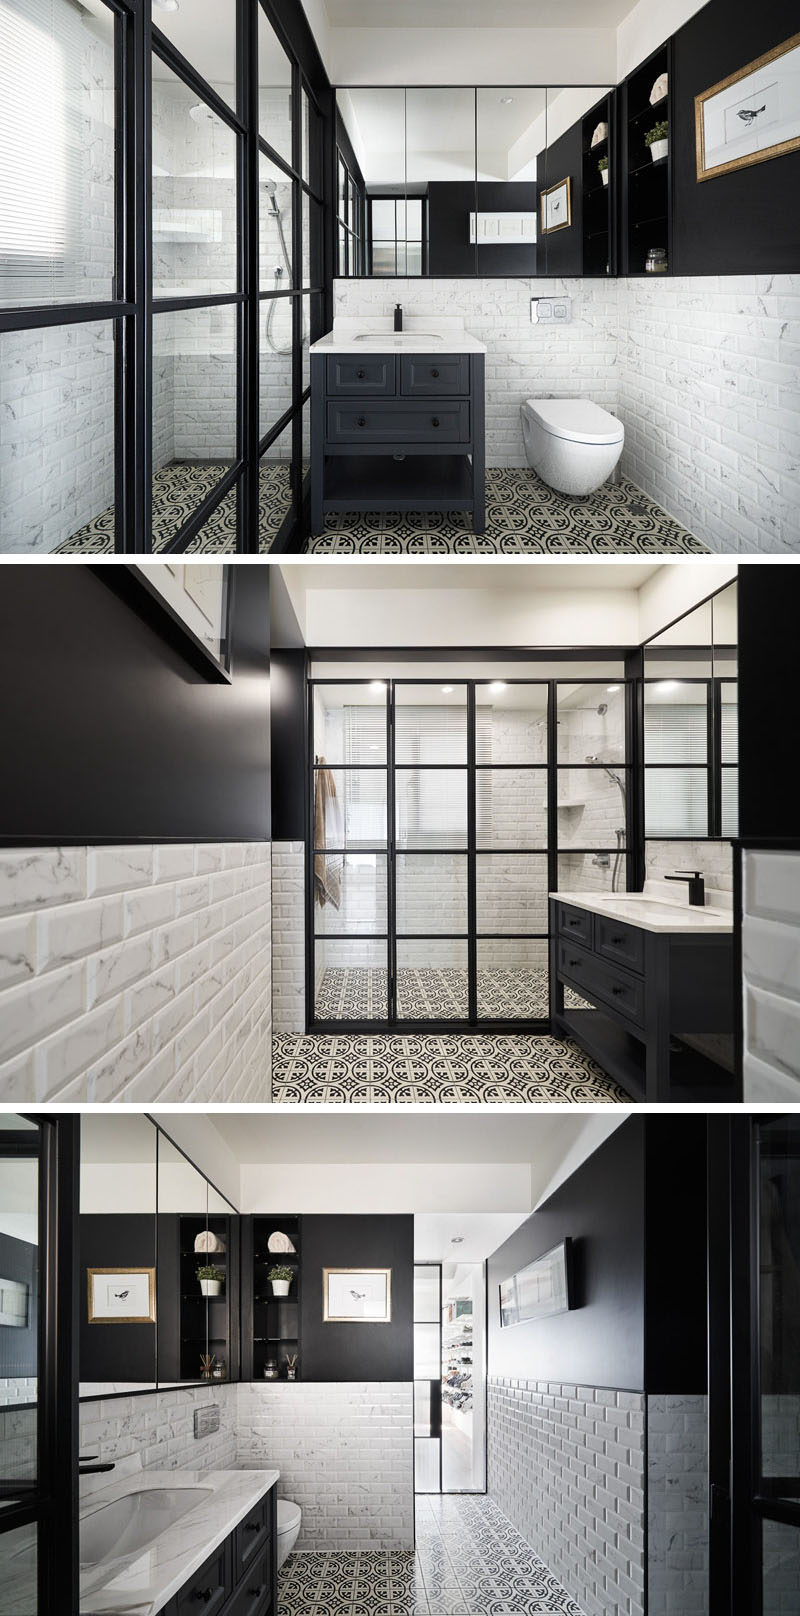 In this modern bathroom, a black-framed glass partition encloses the shower, and complements the upper half of the walls that are painted black. #Bathroom #ModernBathroom